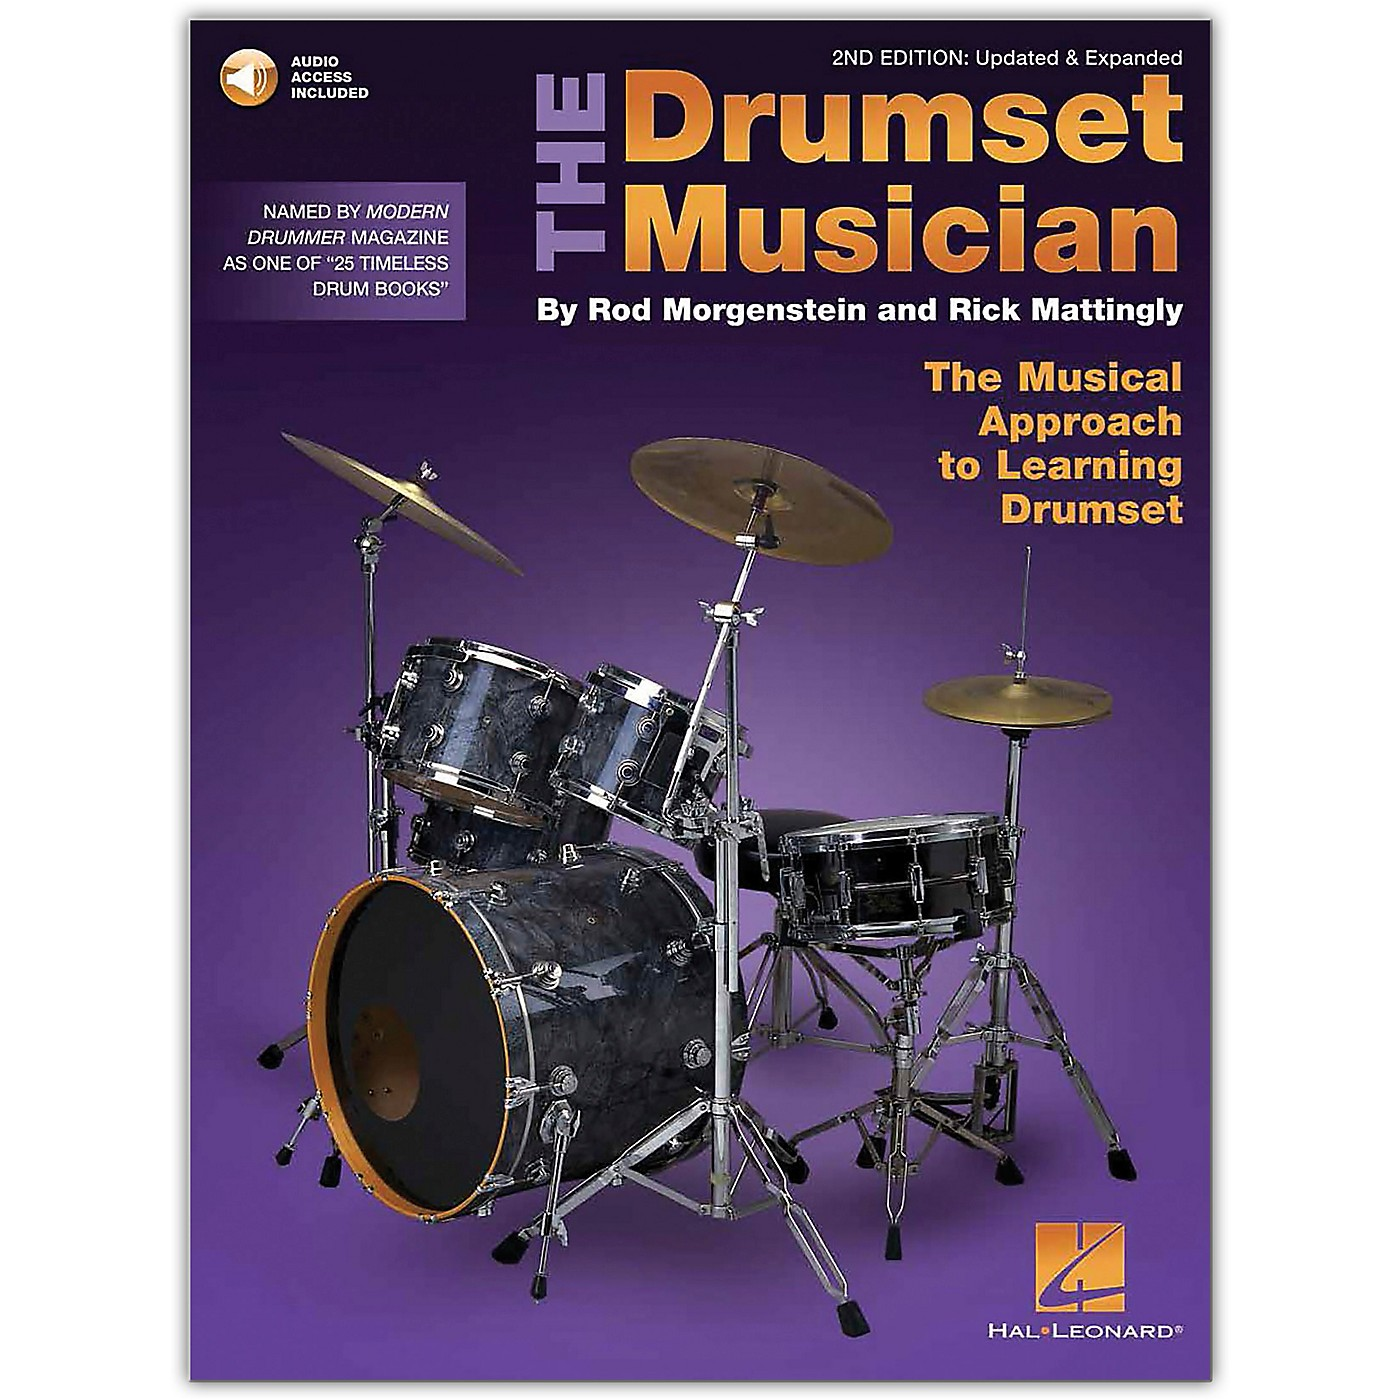 Hal Leonard The Drumset Musician - The Musical Approach to Learning Drumset 2nd Edition Book/Online Audio thumbnail